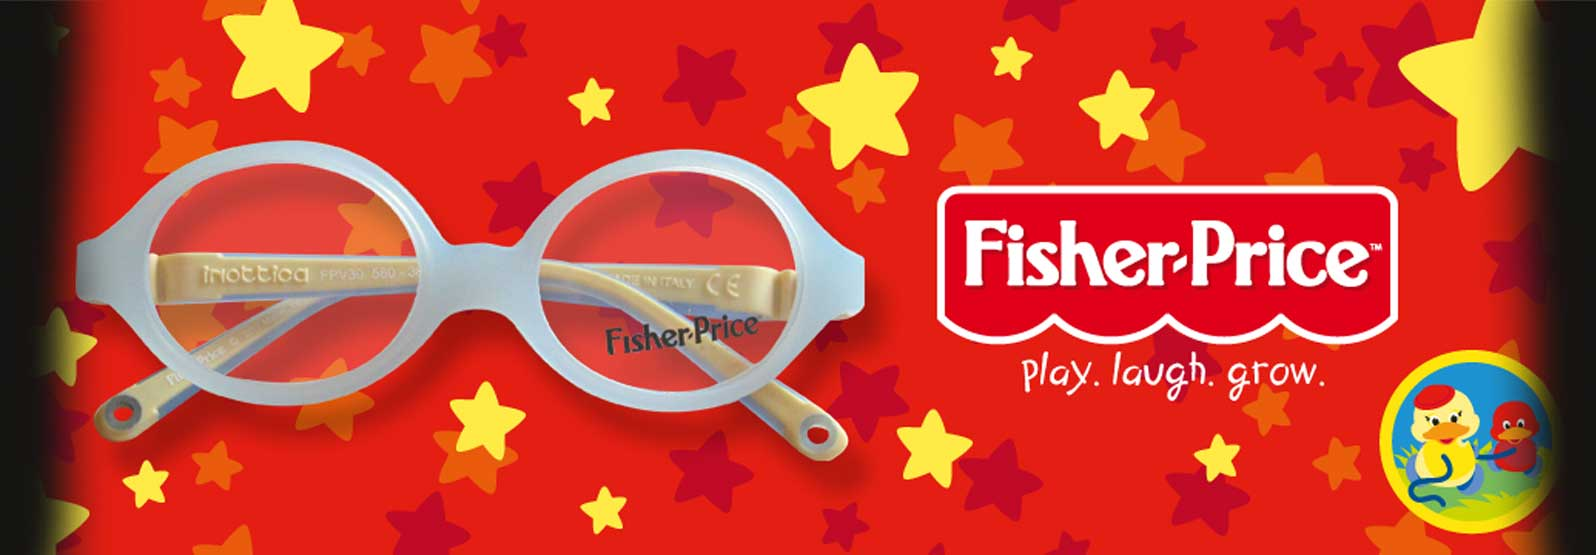 Fisher-Price Play. Laugh. Grow.